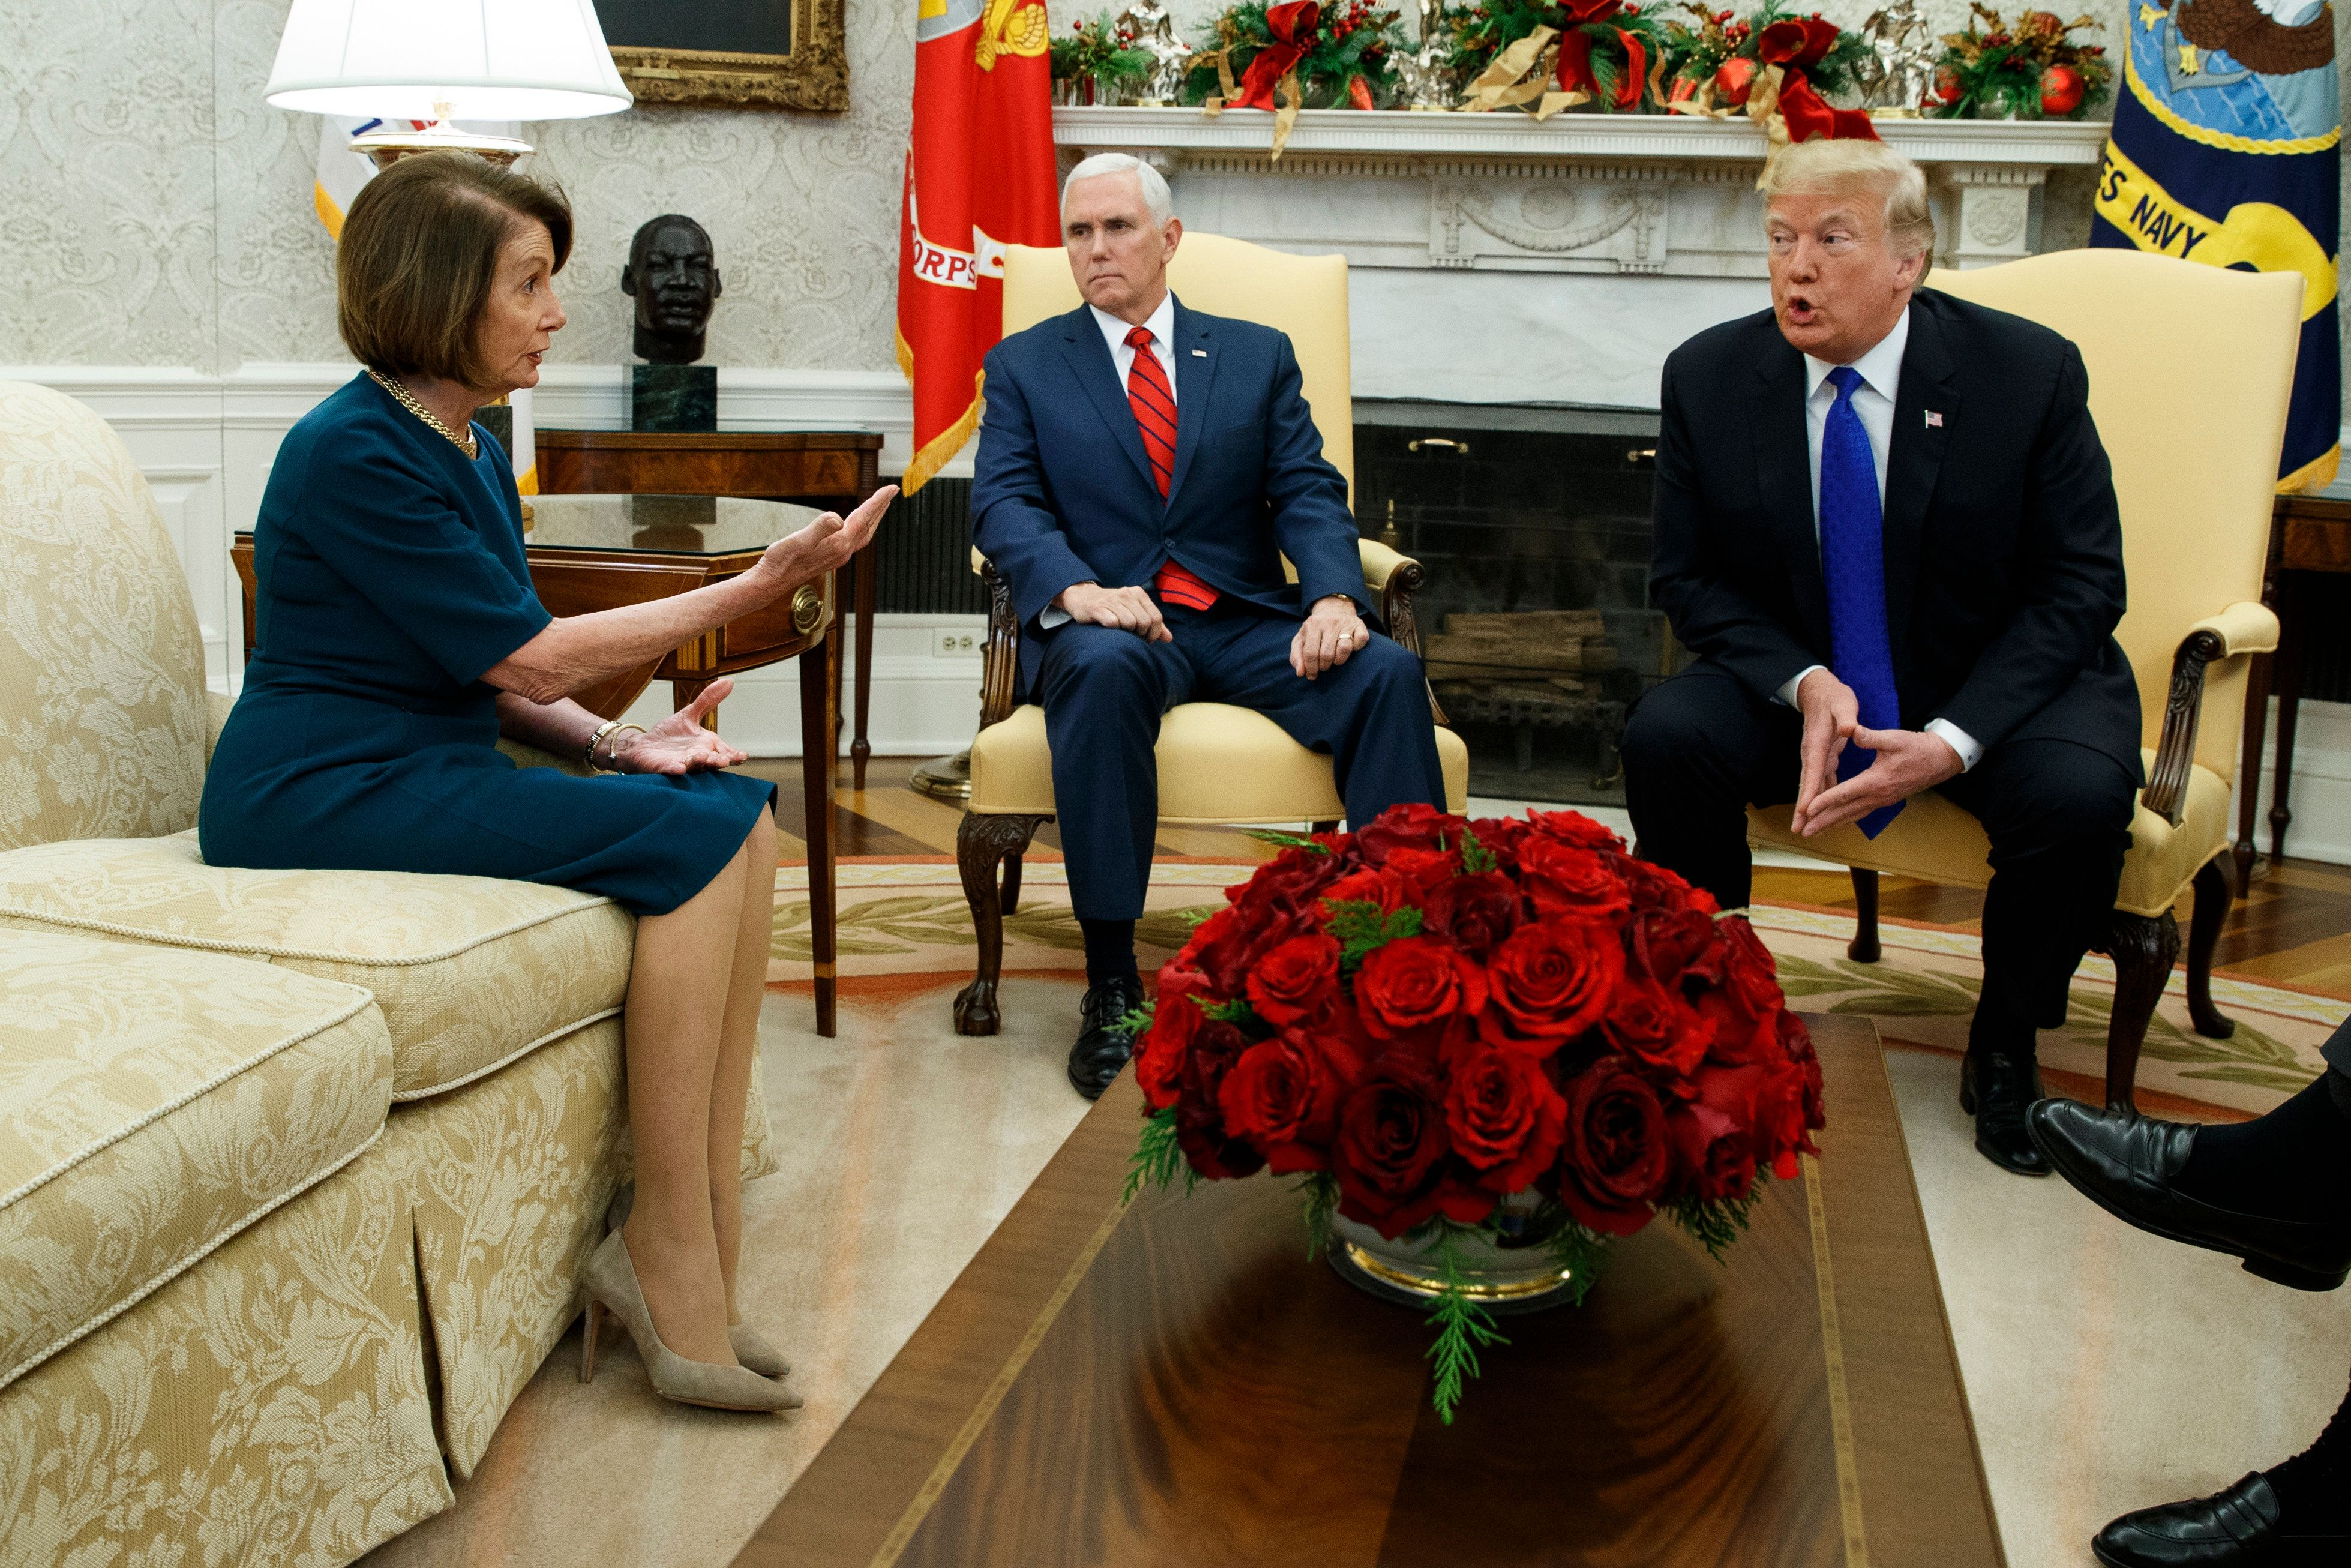 Vice President Mike Pence, center, looks on as House Minority Leader Rep. Nancy Pelosi, D-Calif., and President Donald Trump argue during a meeting in the Oval Office of the White House, Tuesday, Dec. 11, 2018, in Washington. (AP Photo/Evan Vucci)